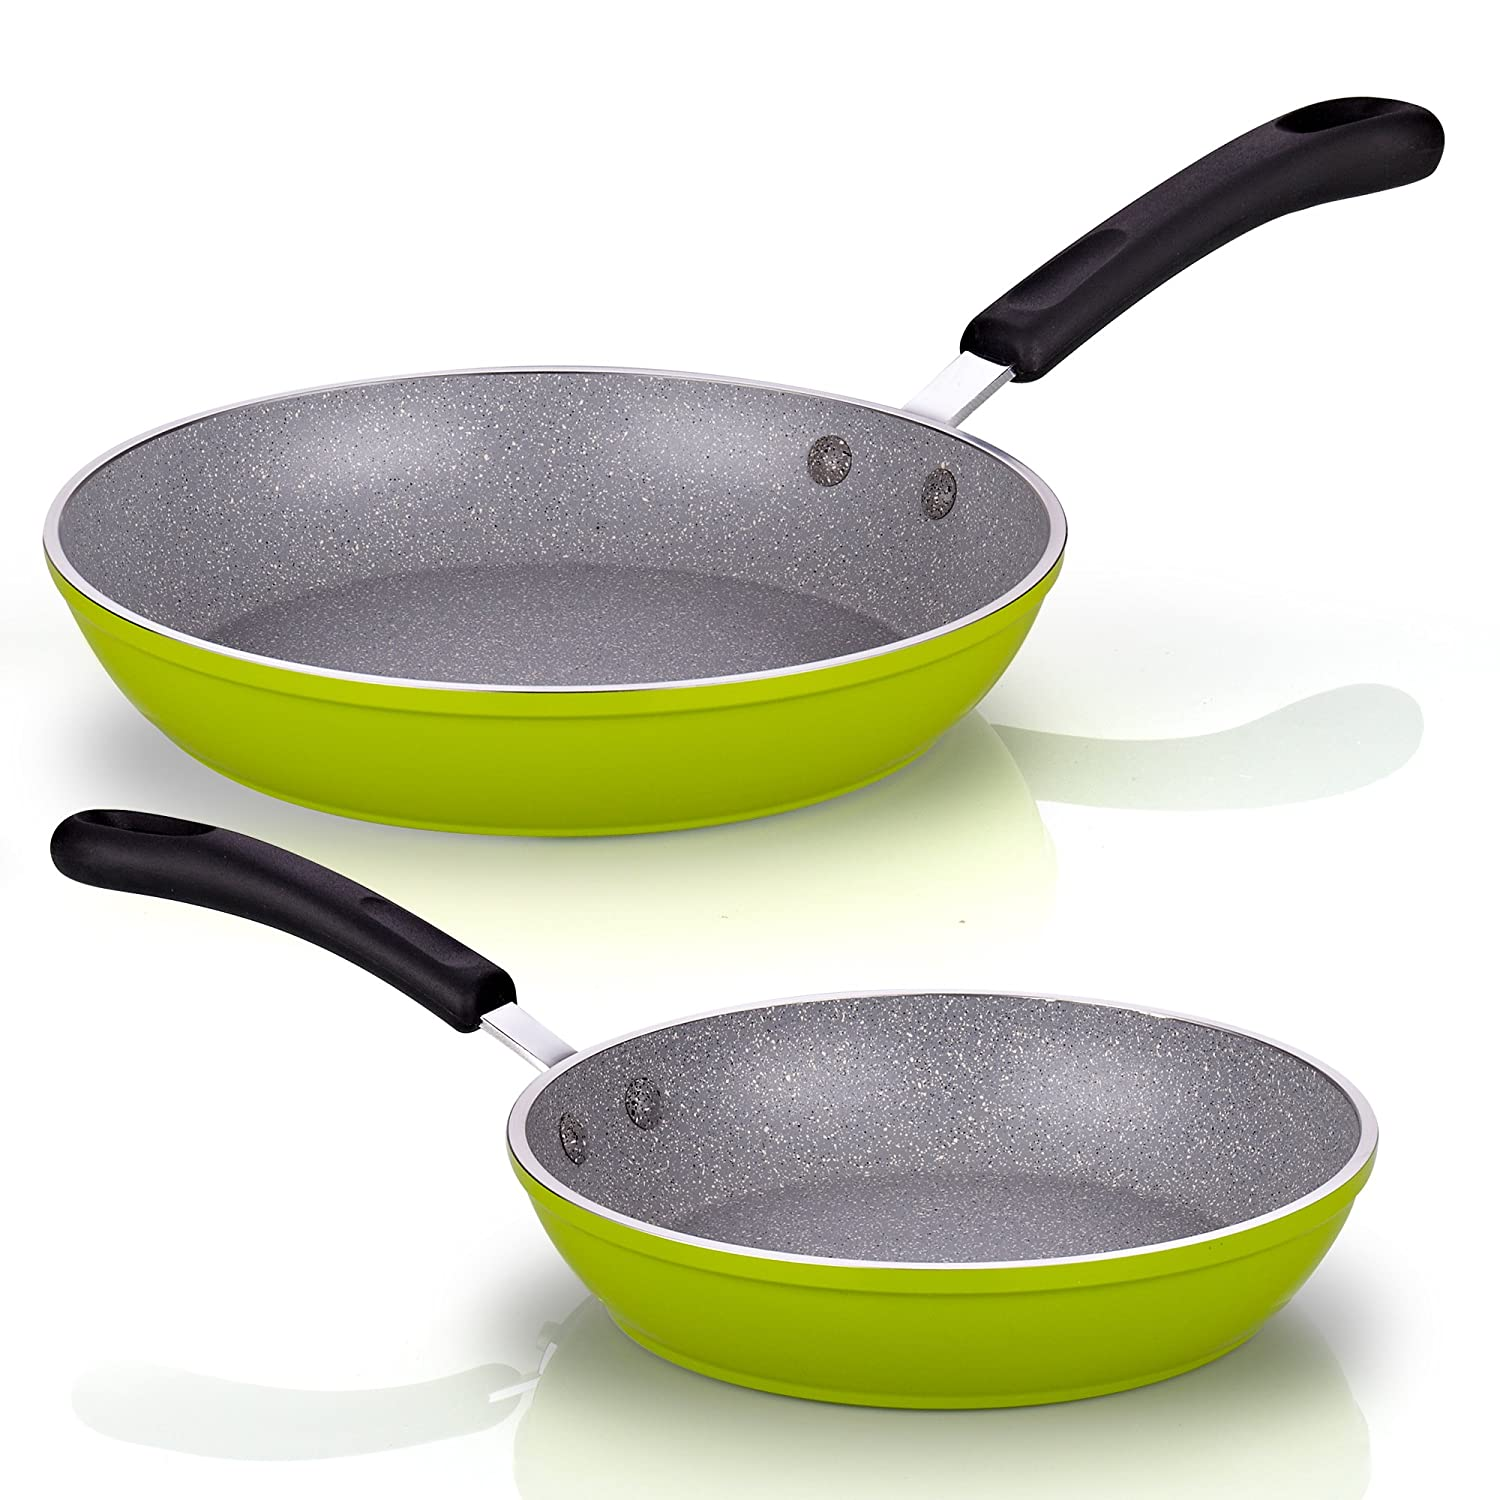 Cook N Home 12-Inch Frying Pan with Non-Stick Coating Induction Compatible Bottom, Large, Green: Amazon.es: Hogar